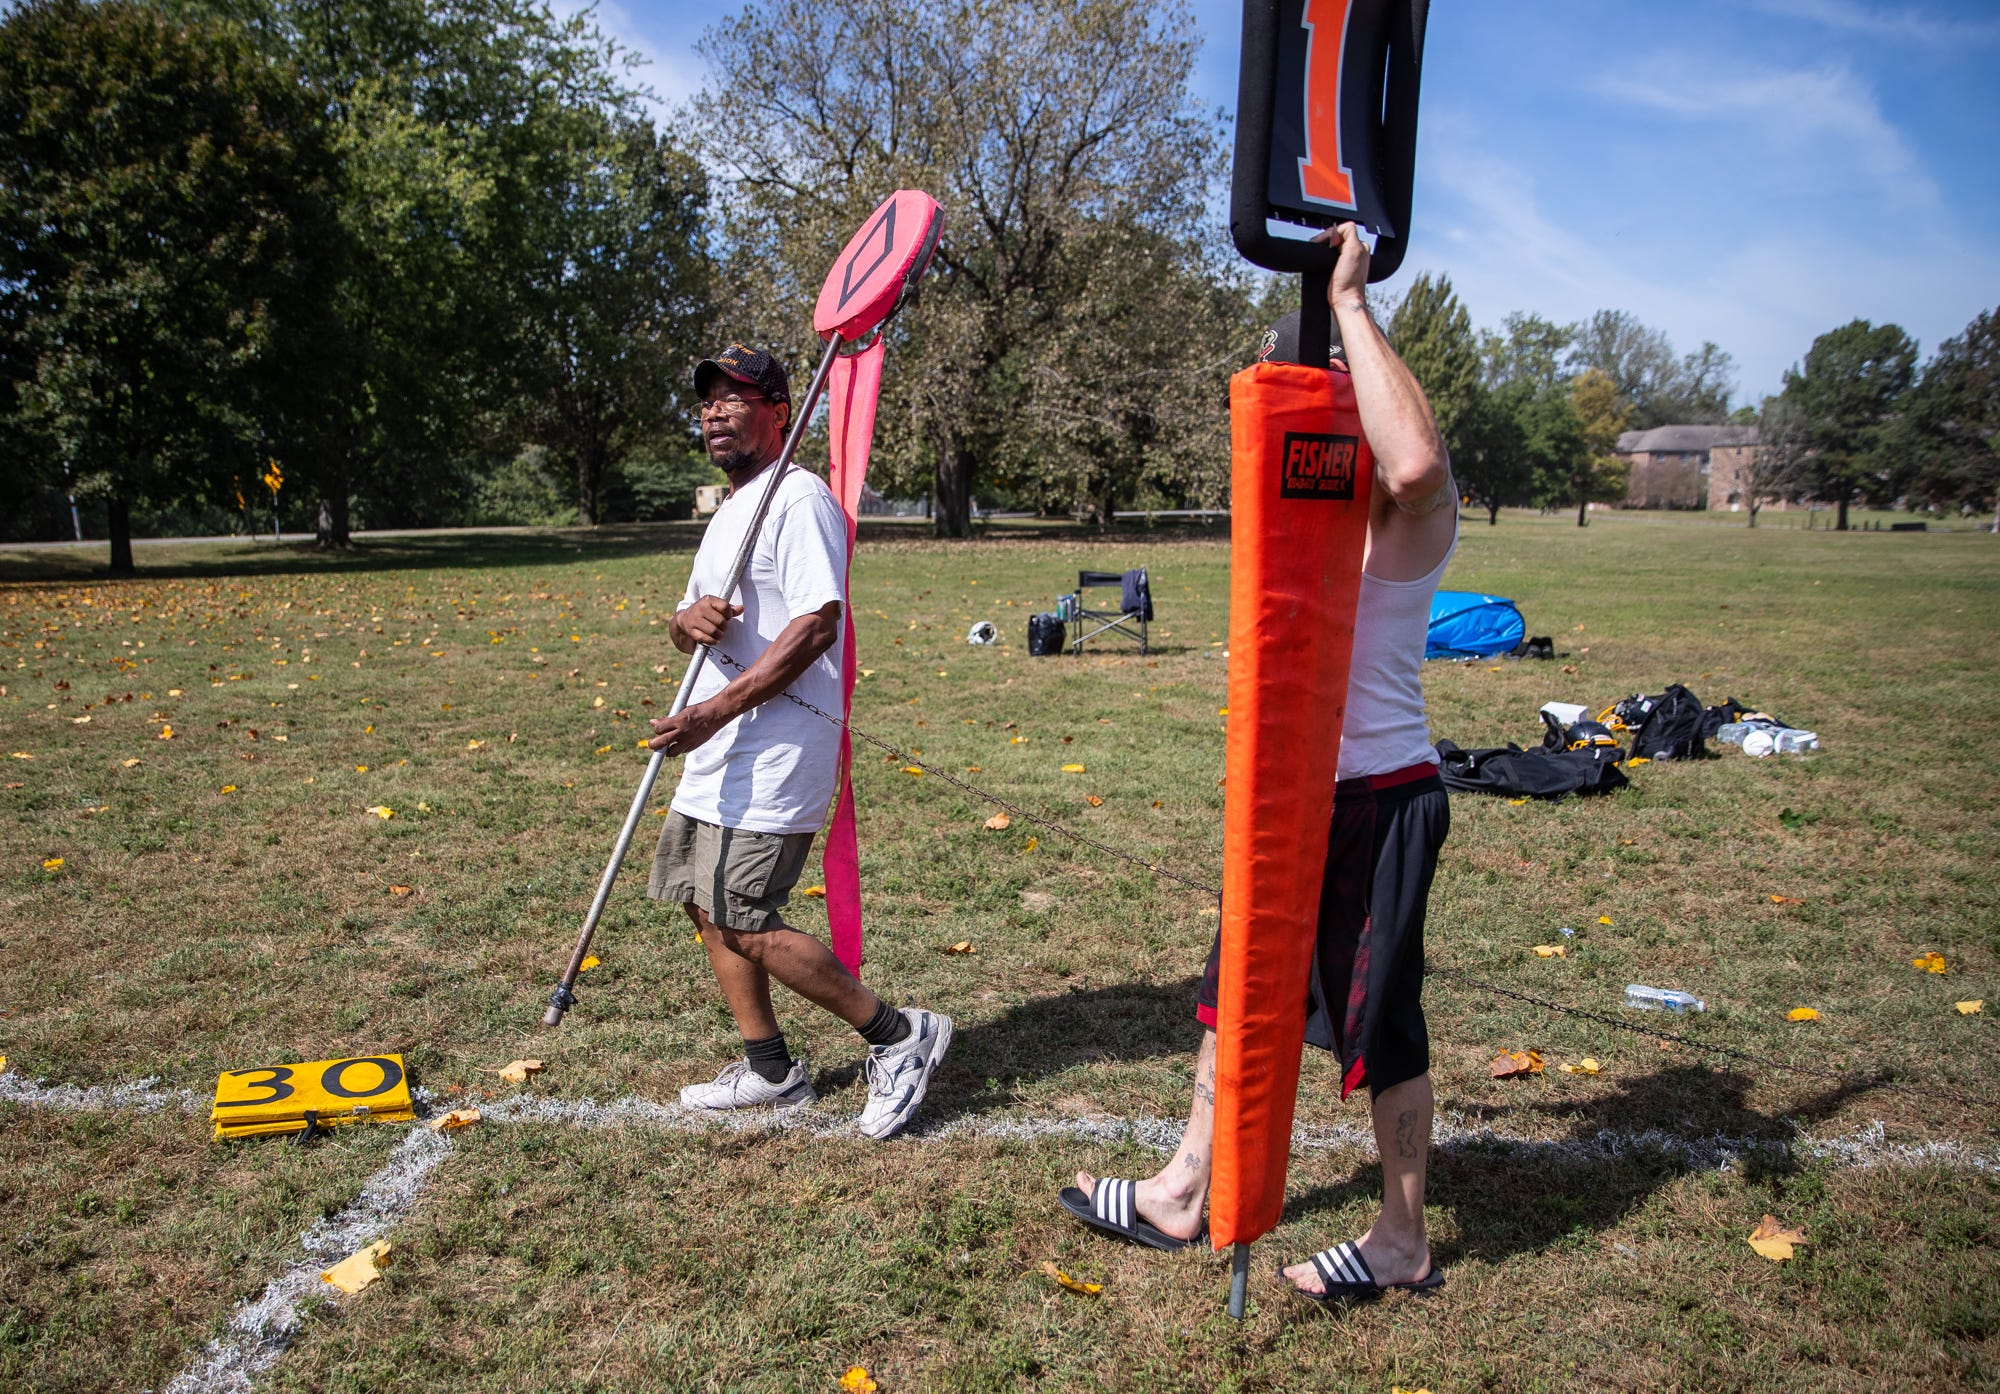 Robert O'Neil, father of Indy Steelers player Antonio, volunteers to be on the football chain crew during his son's game at Watkins Park on Sunday, Sept. 22, 2019. O'Neil would spend all day at the park, then head into work at his third-shift custodial job.